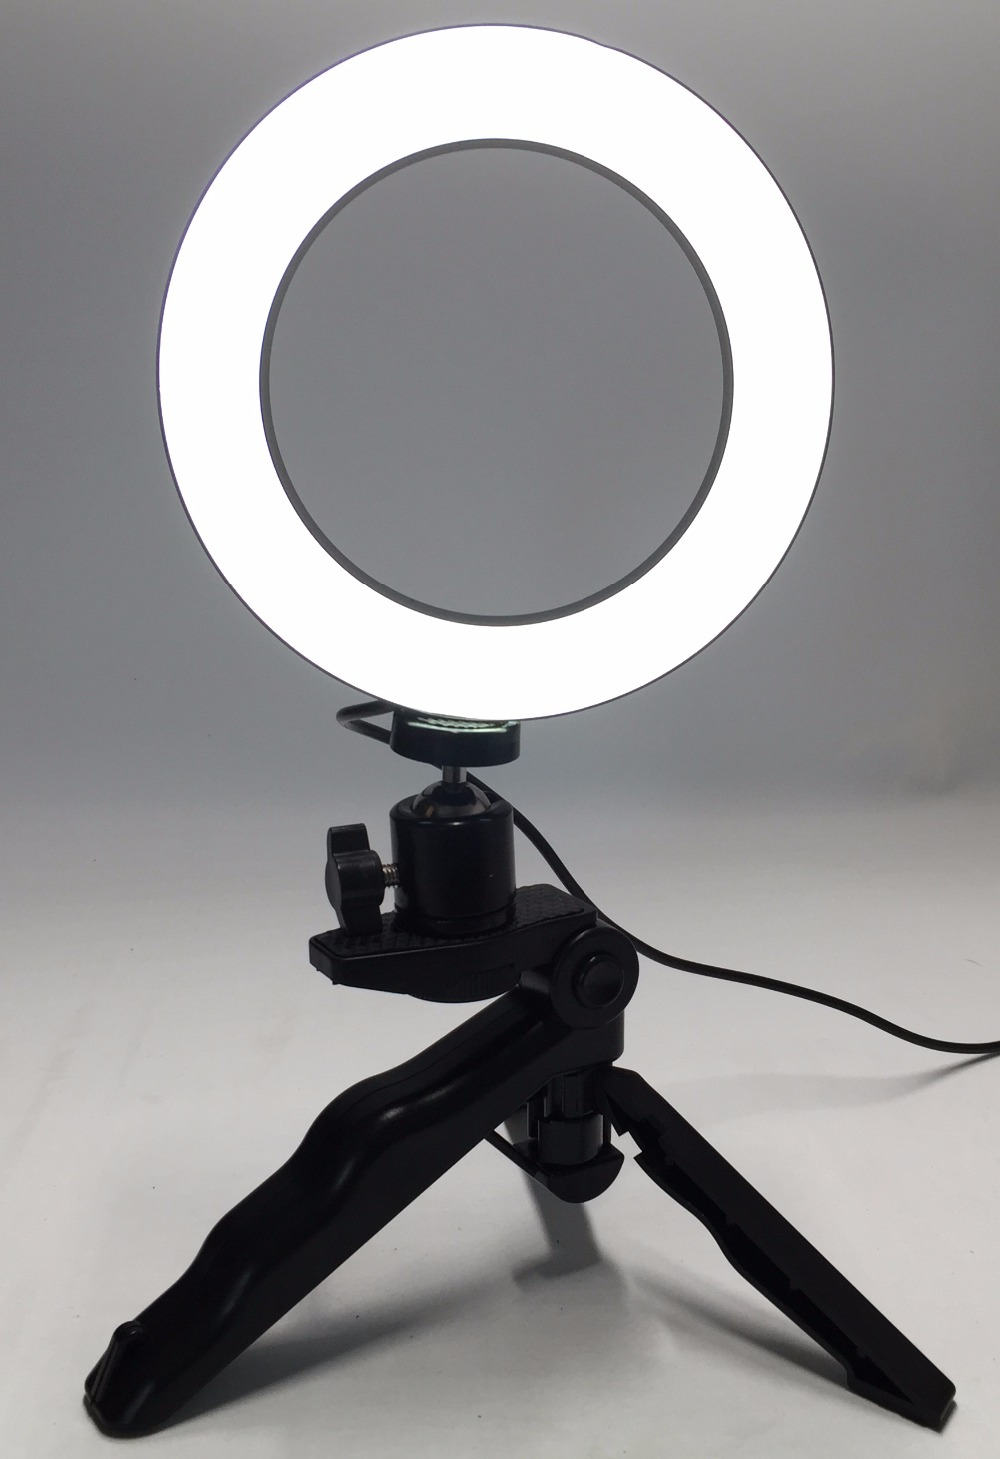 Photograph Ring Led 14.5Cm Photographic Lighting+Tripod Cellphone Video Images Ring Gentle Usb Line 3000Ok-6000Ok White Yellow Colour